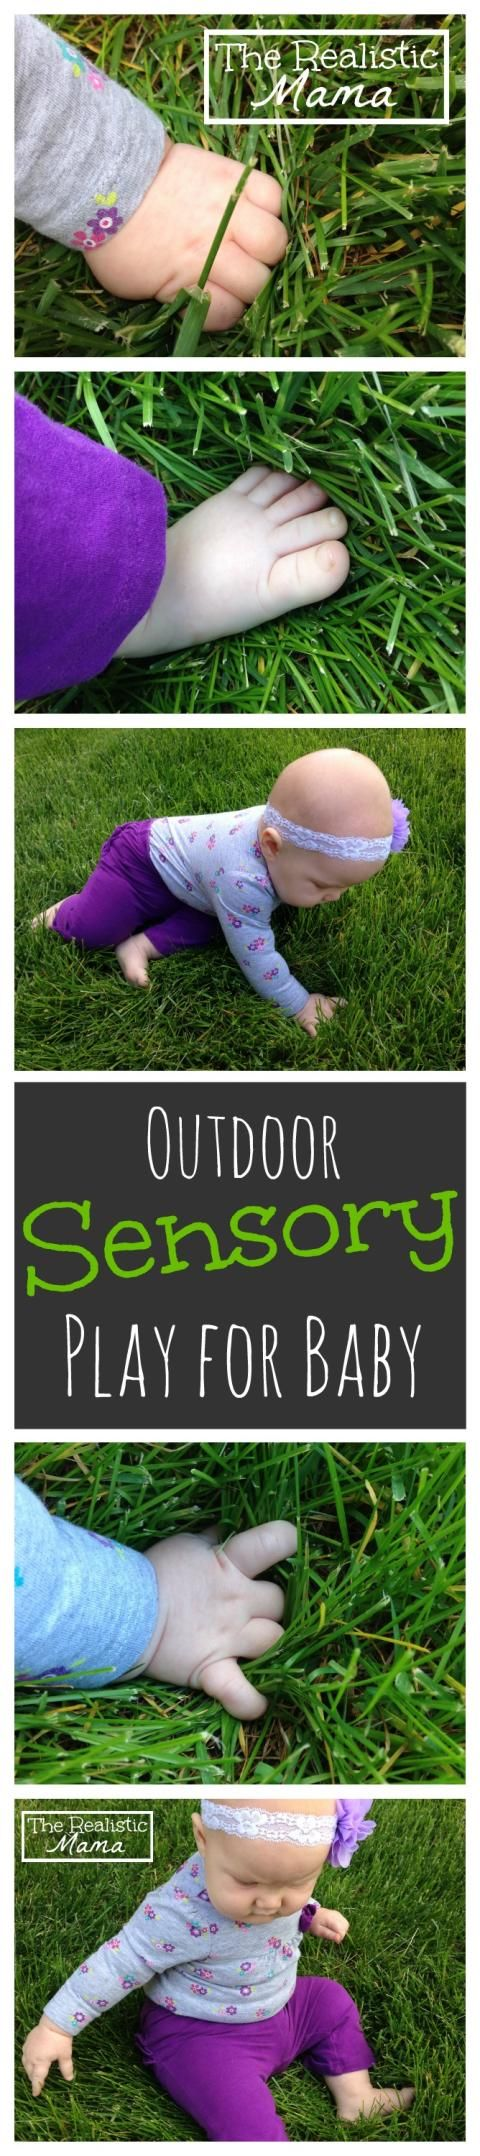 Outdoor Sensory Play for Baby - The Realistic Mama